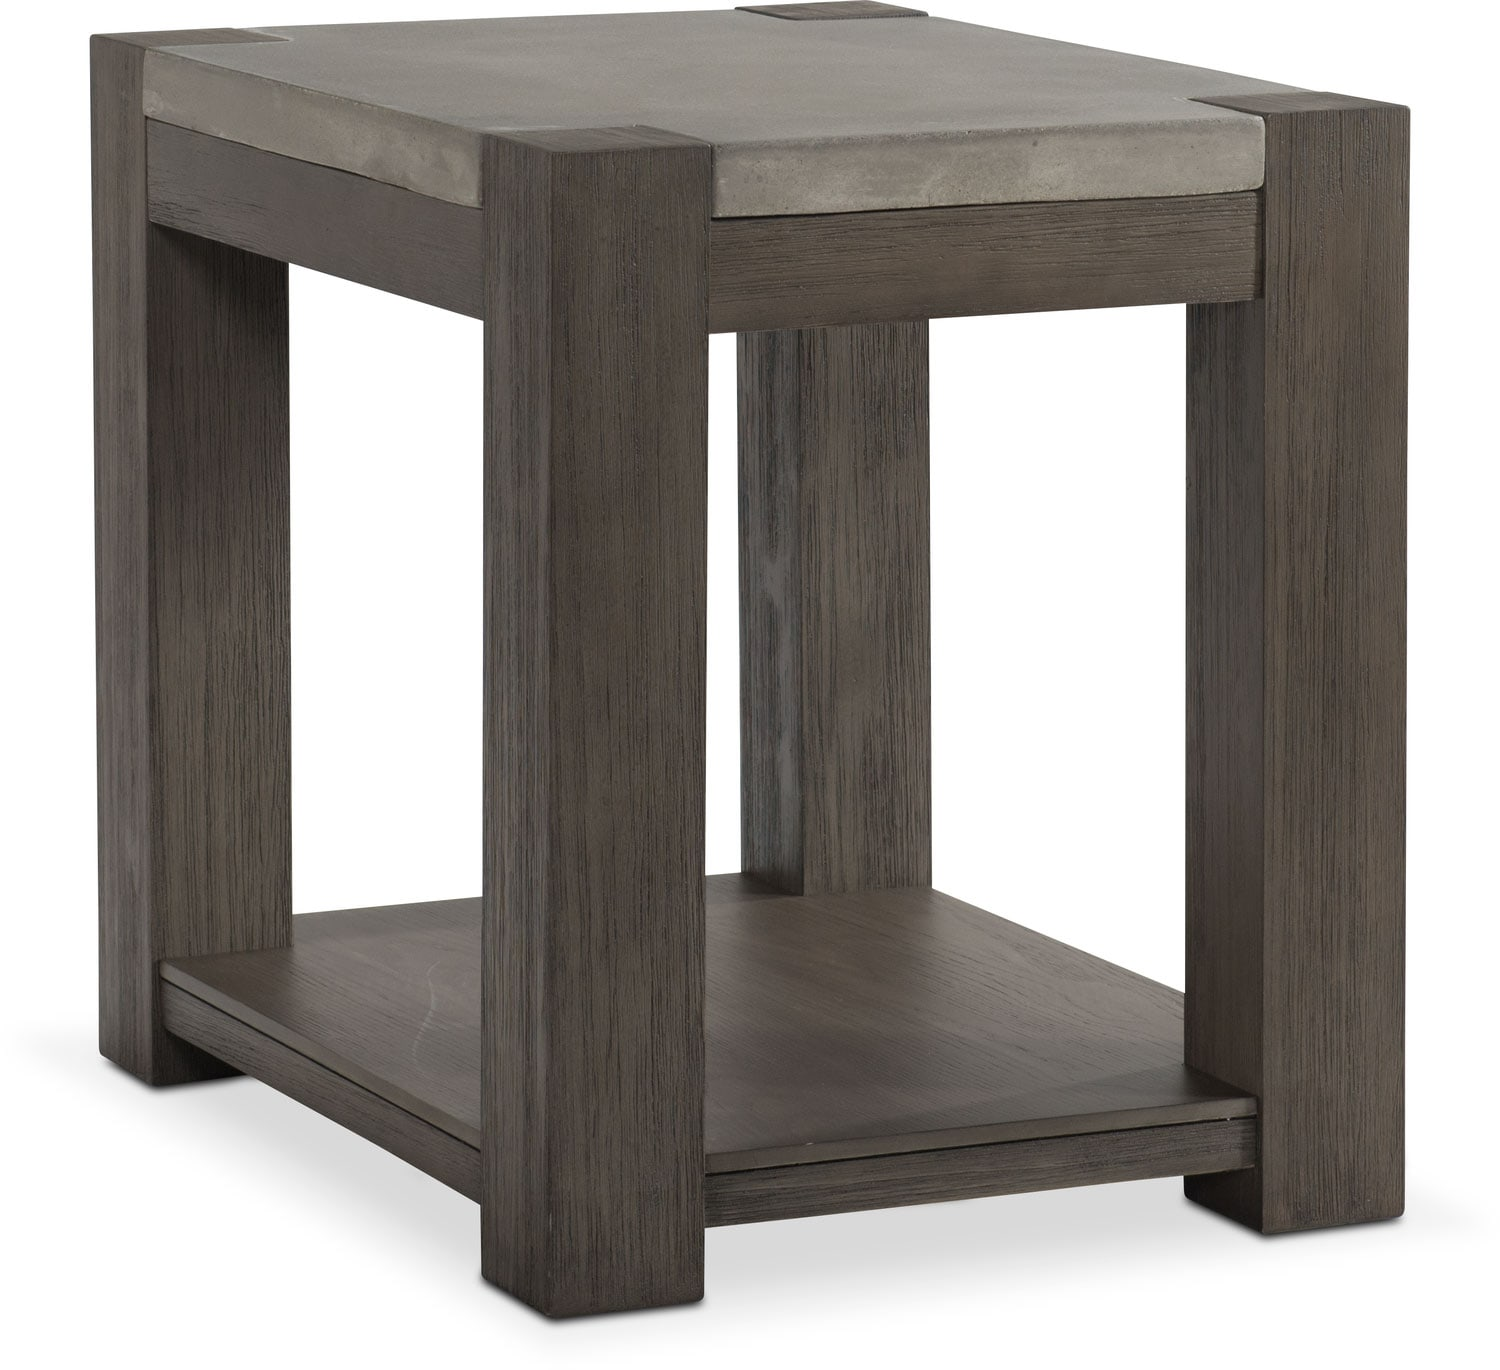 gray chair side table desk with footrest kellen chairside value city furniture and